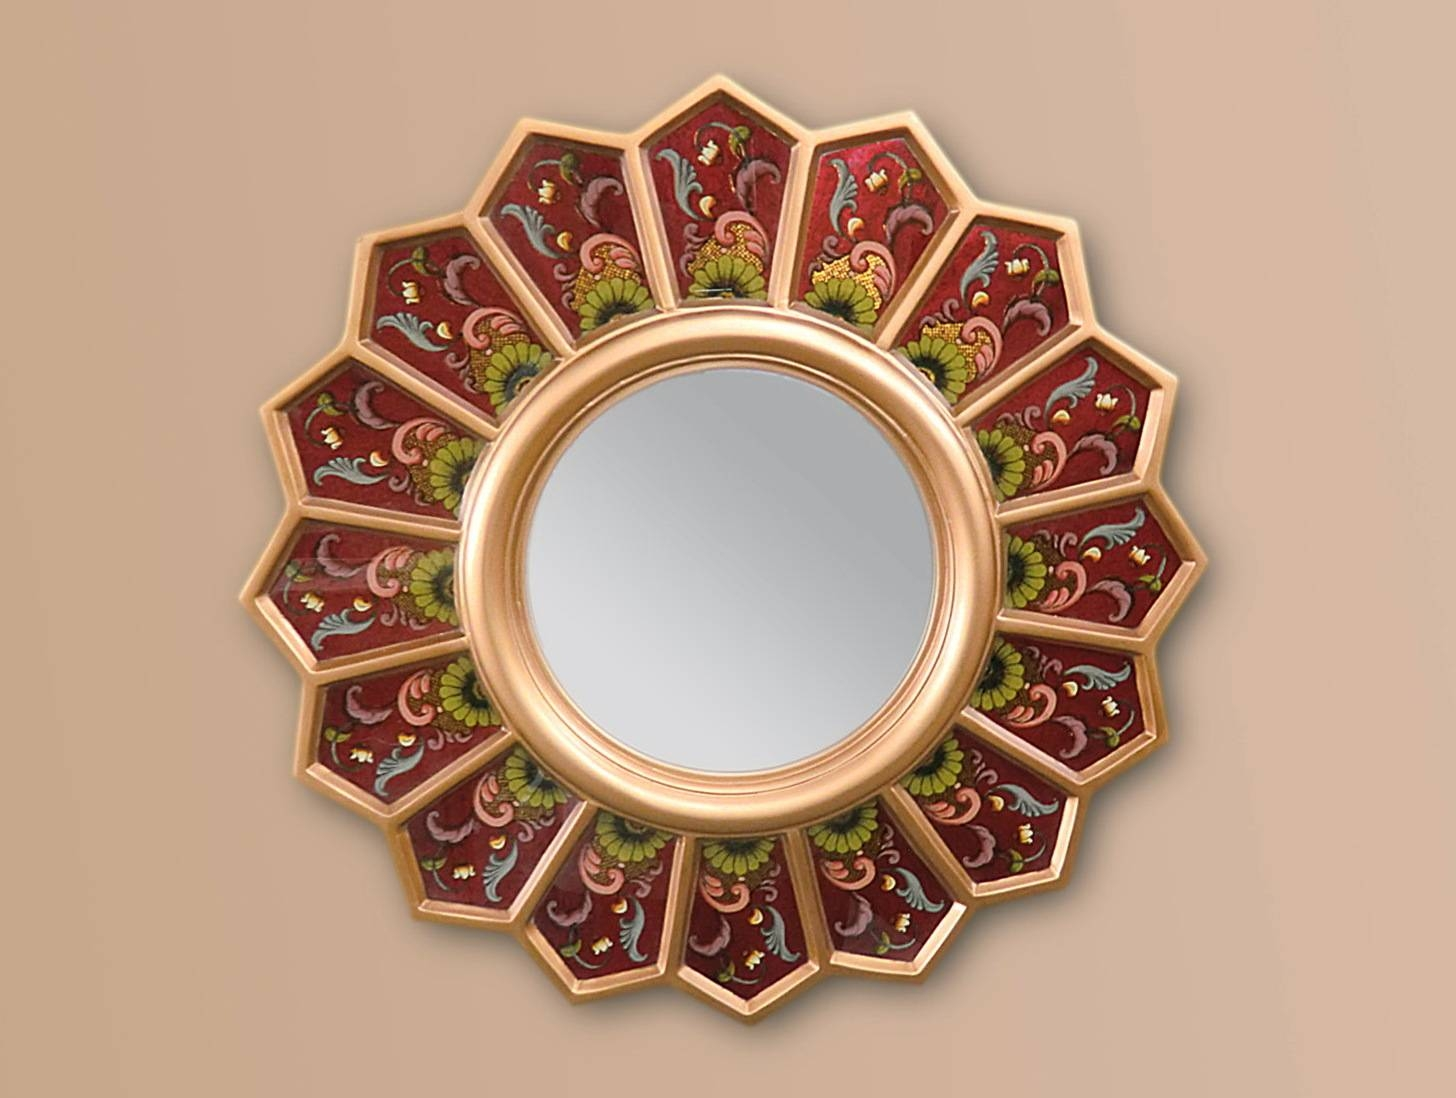 Nice Small Round Mirrors Wall Art Home Design Ideas Photo In Latest Small Round Mirrors Wall Art (View 11 of 20)